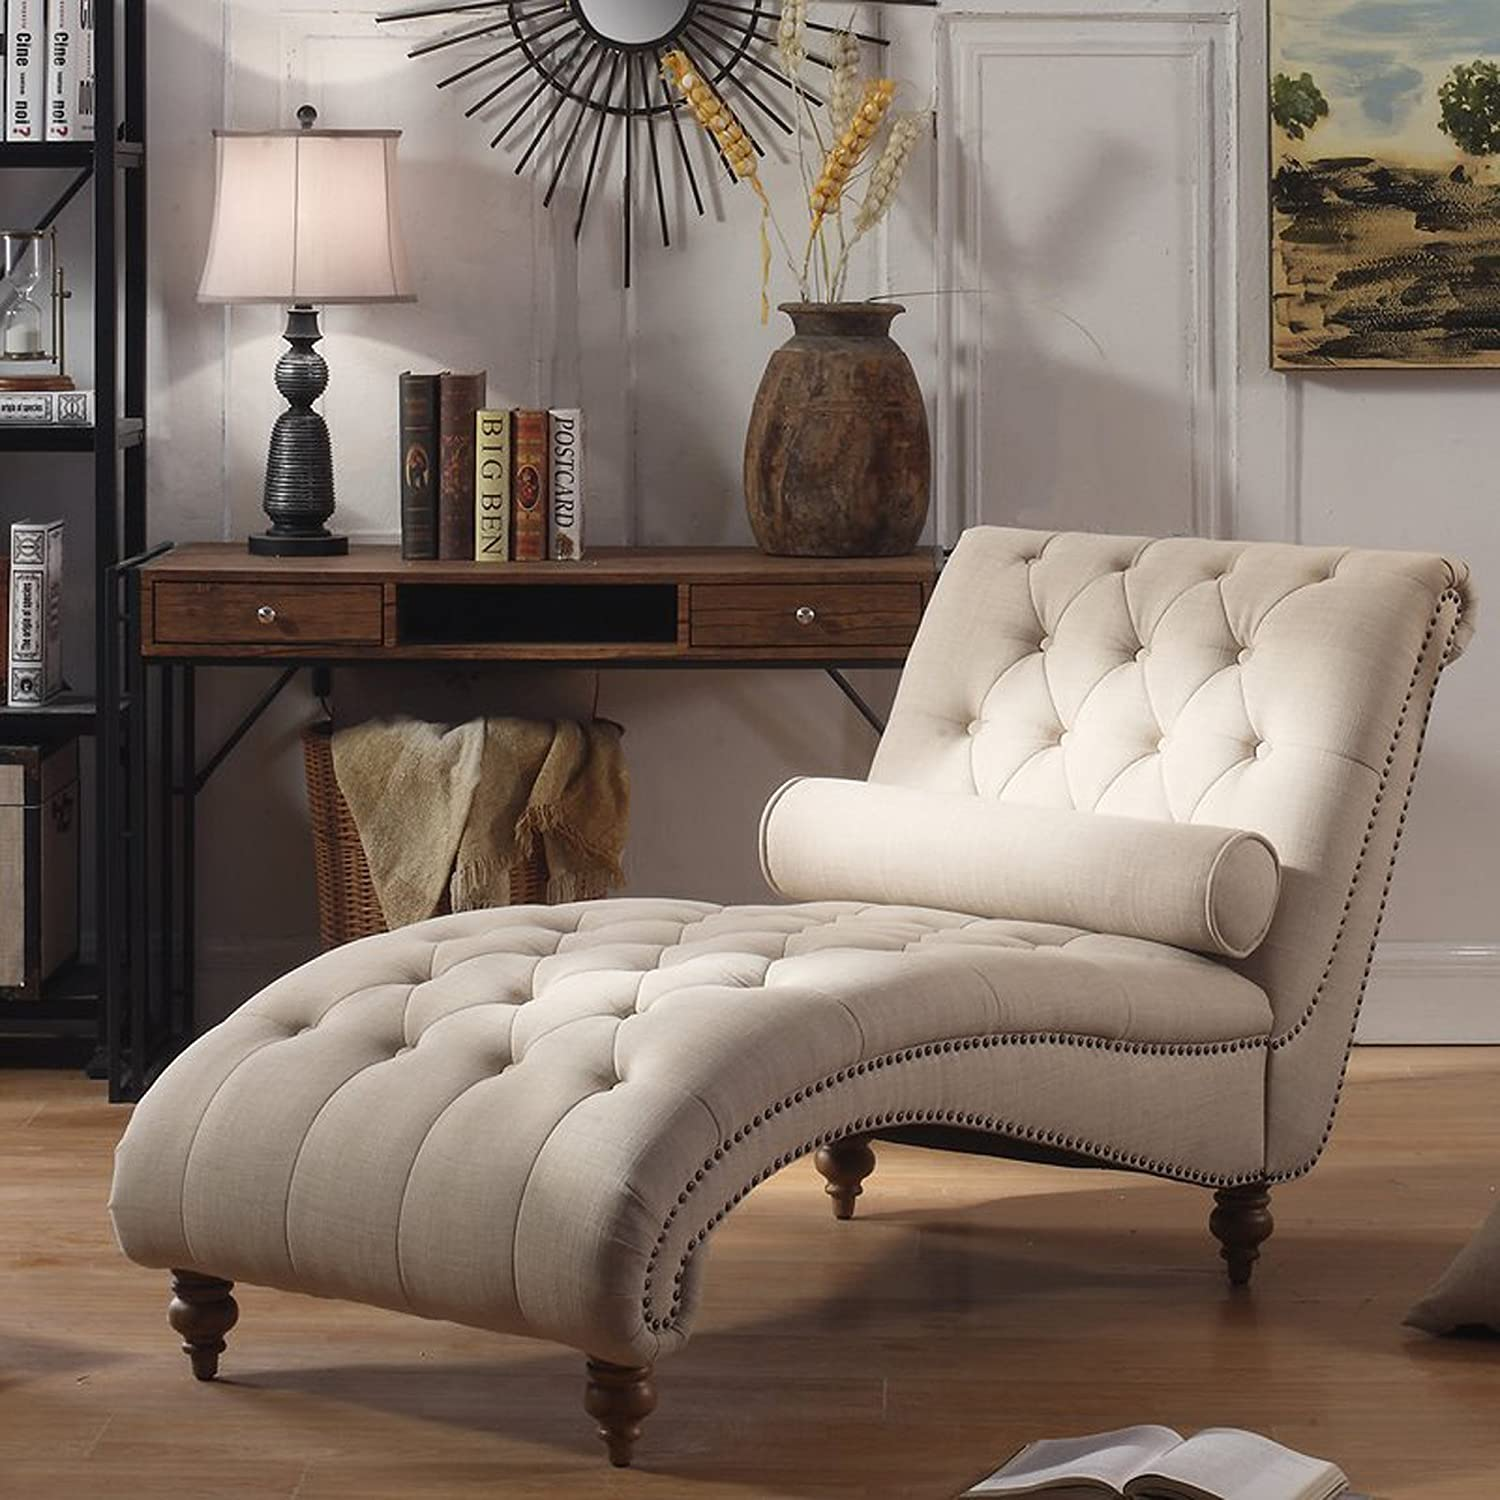 Ordinaire Amazon.com: Luxorious Indoor Chaise Lounge Chair   Contemporary Tufted  Living Room Lounge With Nailhead Trim And Accent Toss Pillow (Beige):  Kitchen U0026 ...